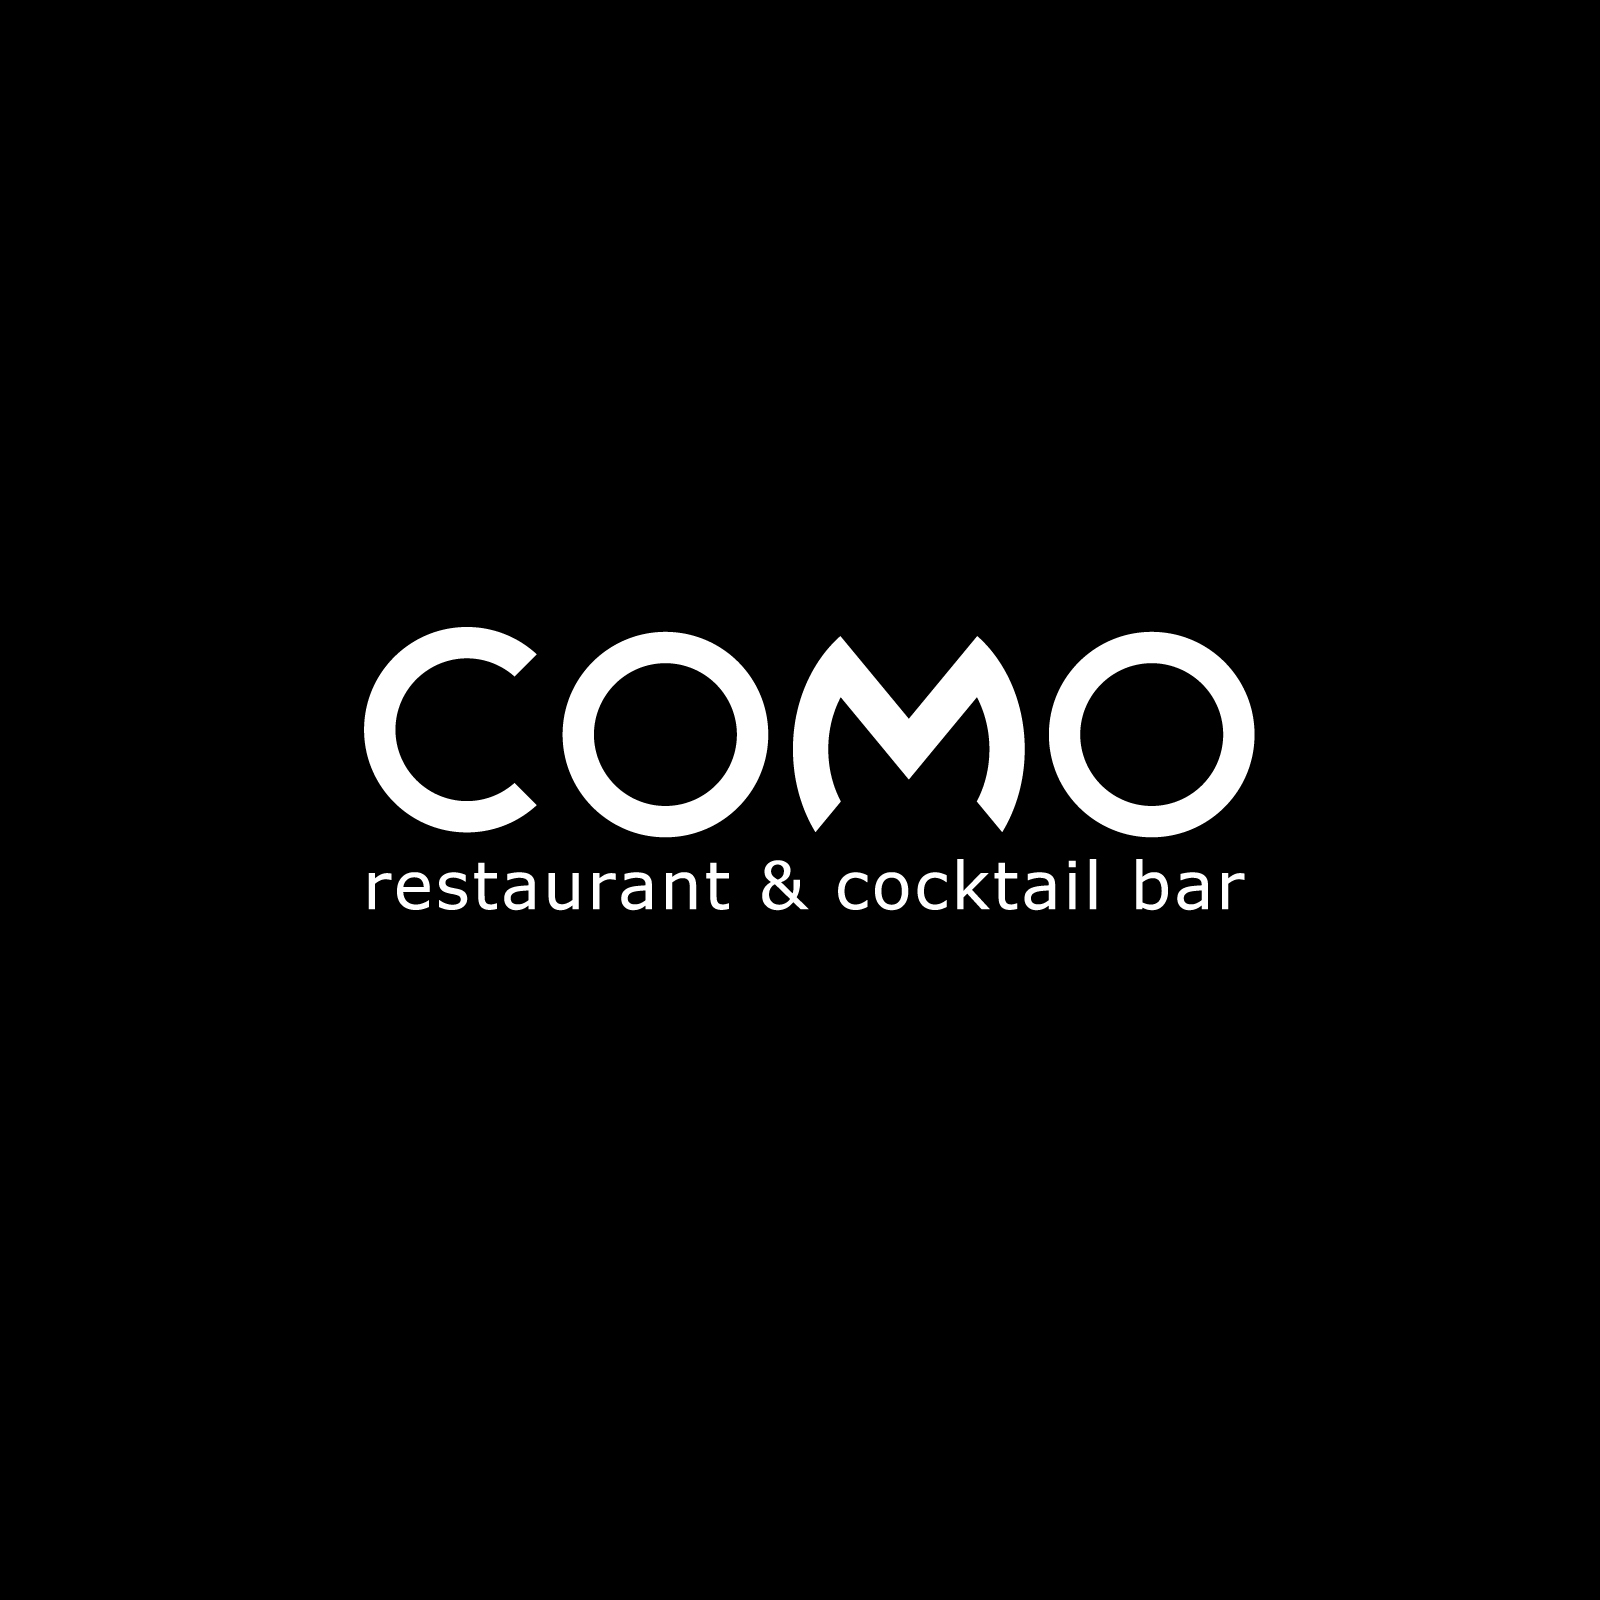 COMO restaurant & cocktail bar